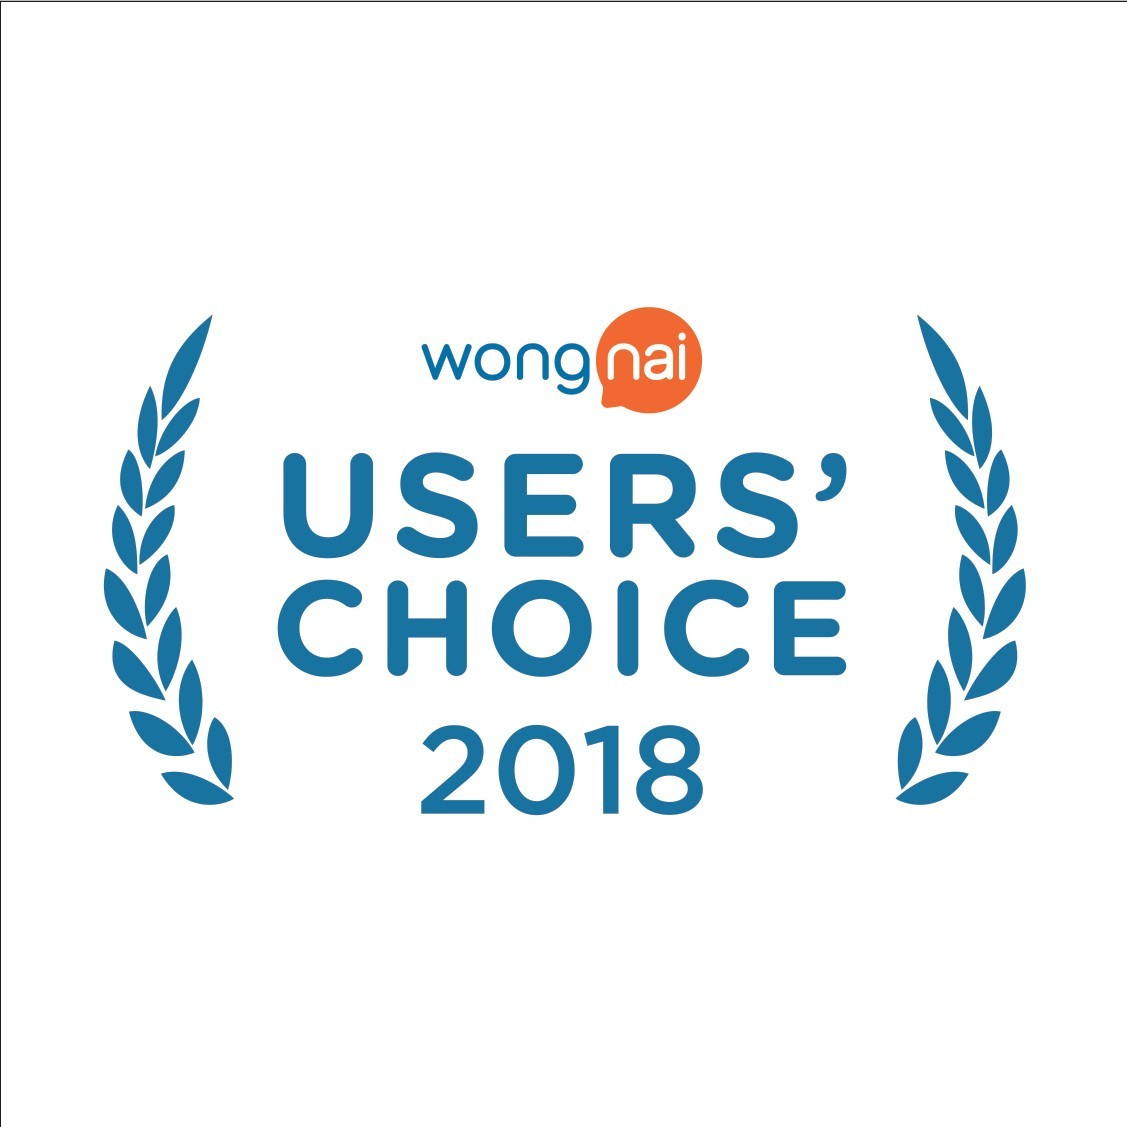 8 Wongnai Users Choice Food Festival 2018